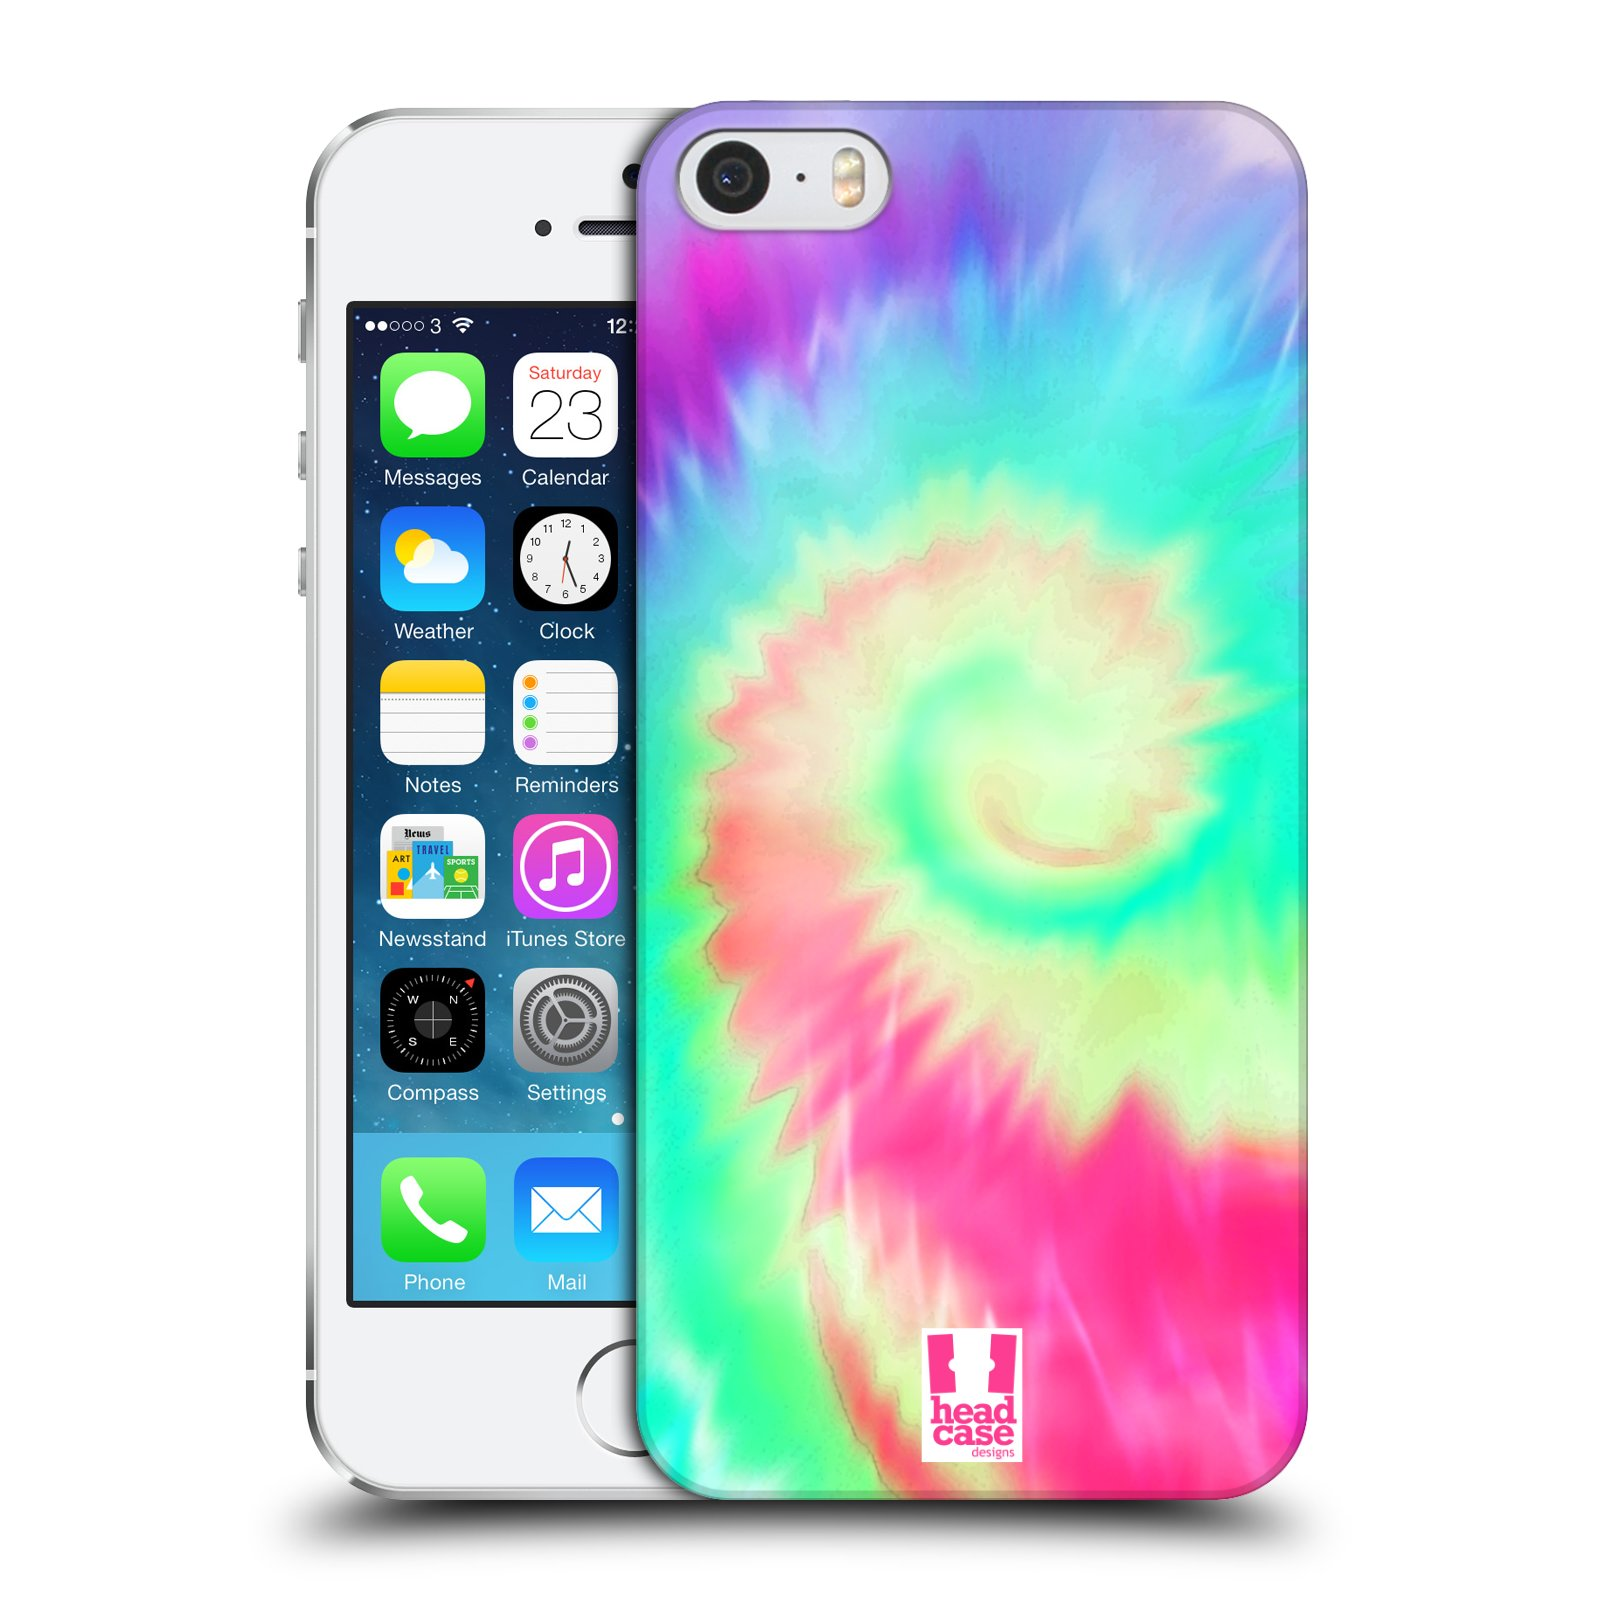 HEAD CASE DESIGNS TIE DYED SERIES 2 CASE COVER FOR APPLE iPHONE 5 5S